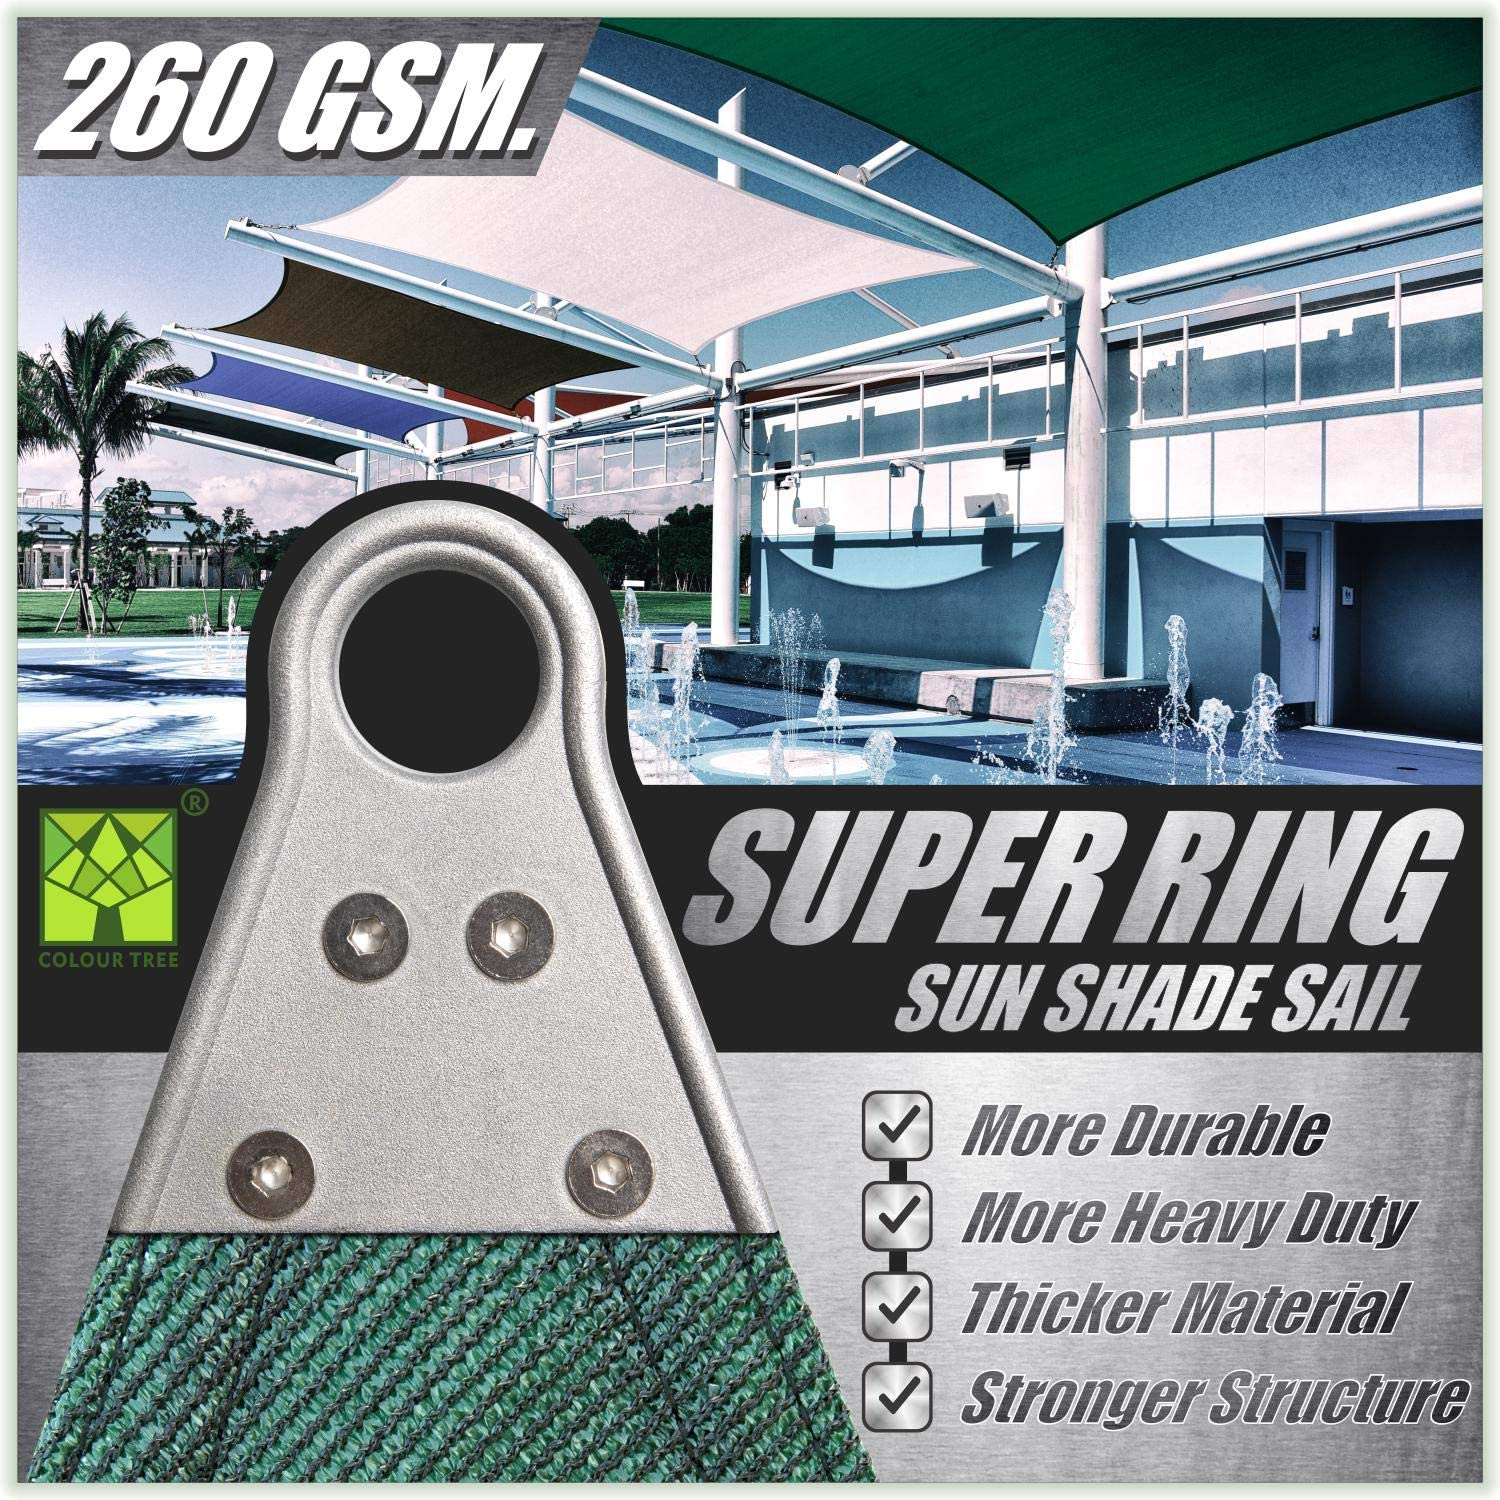 5 Years Warranty 260 GSM ColourTree Super Ring Customized Size Order to Make Custom Size 6 x 6 Green Sun Shade Sail Canopy Awning Shades for Patio Commercial Standard Heavy Duty